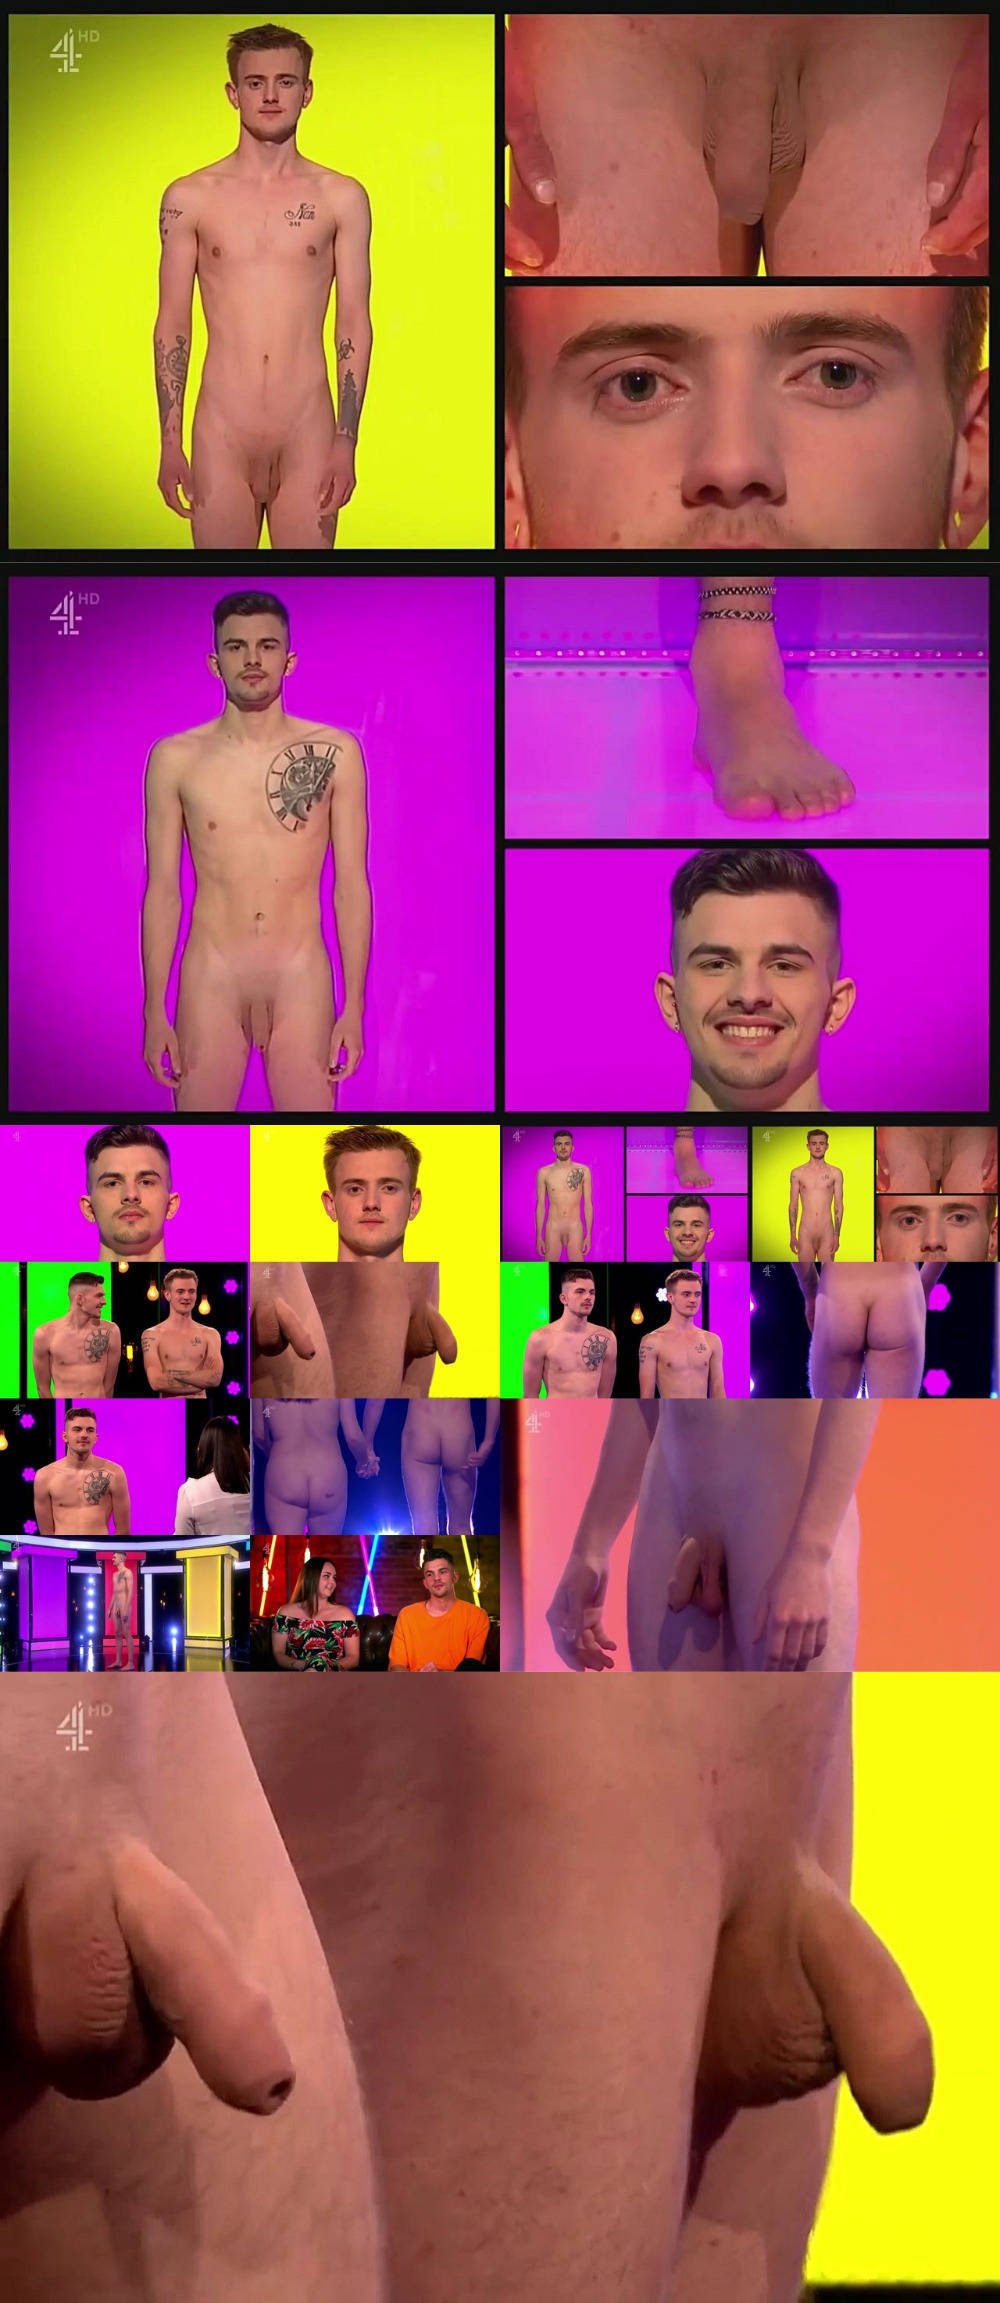 two danish guys naked on tv dating show